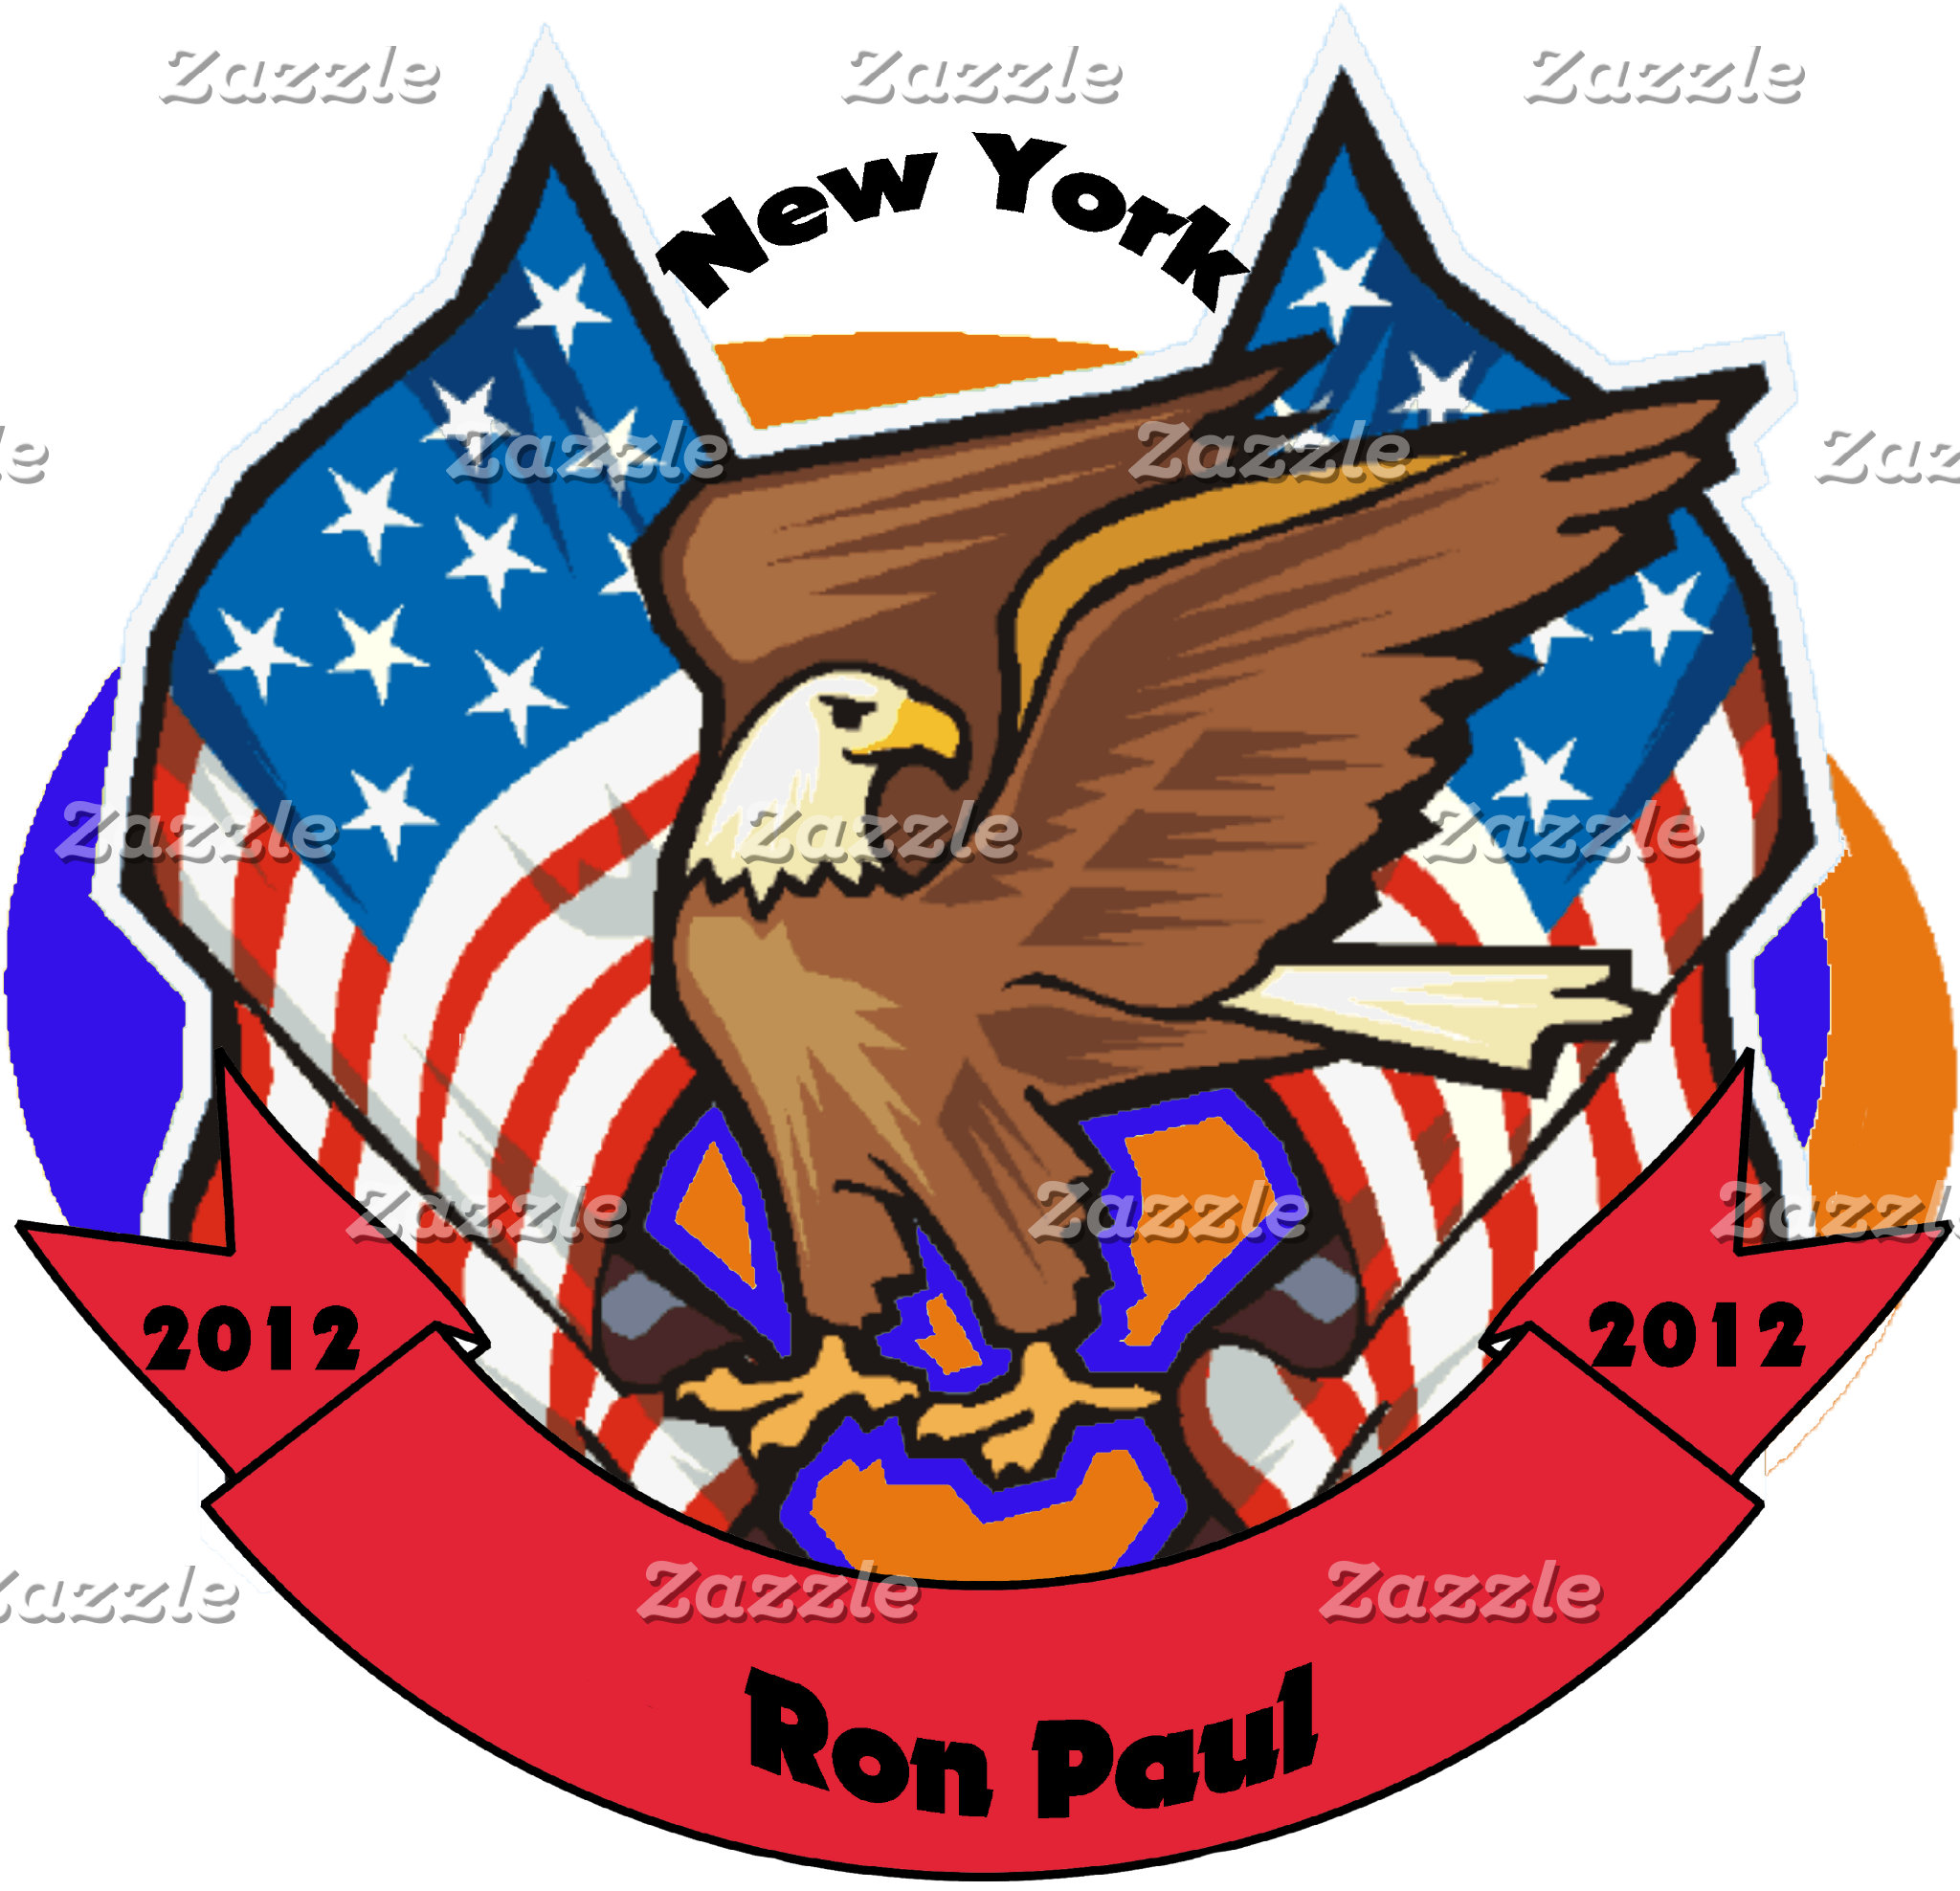 New York for Ron Paul